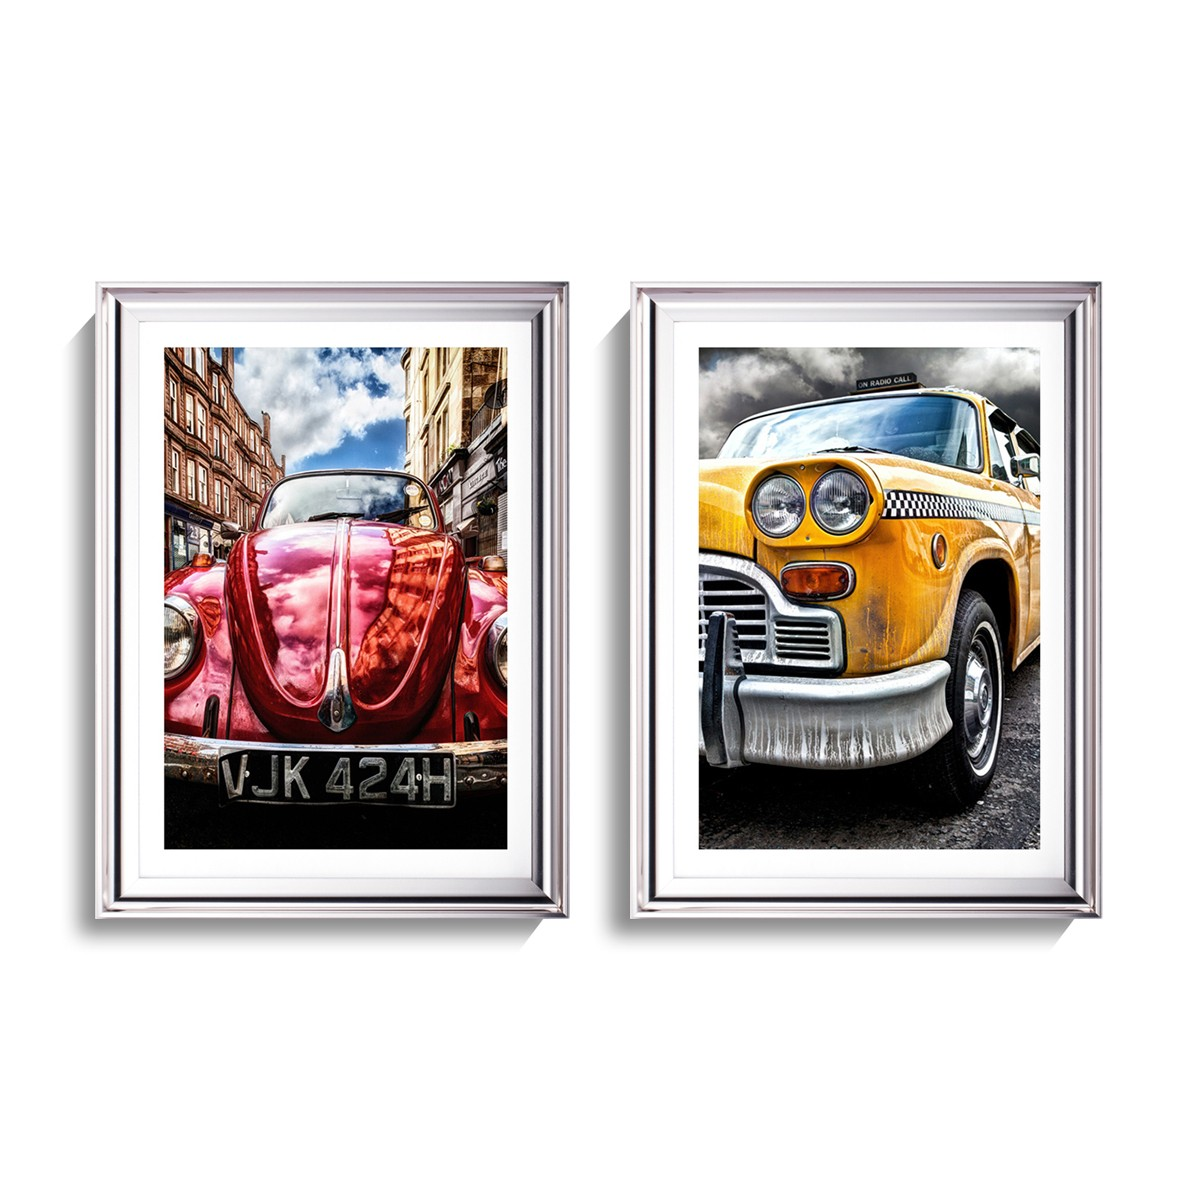 Front Headlight of Vintage Car Print Wall Art